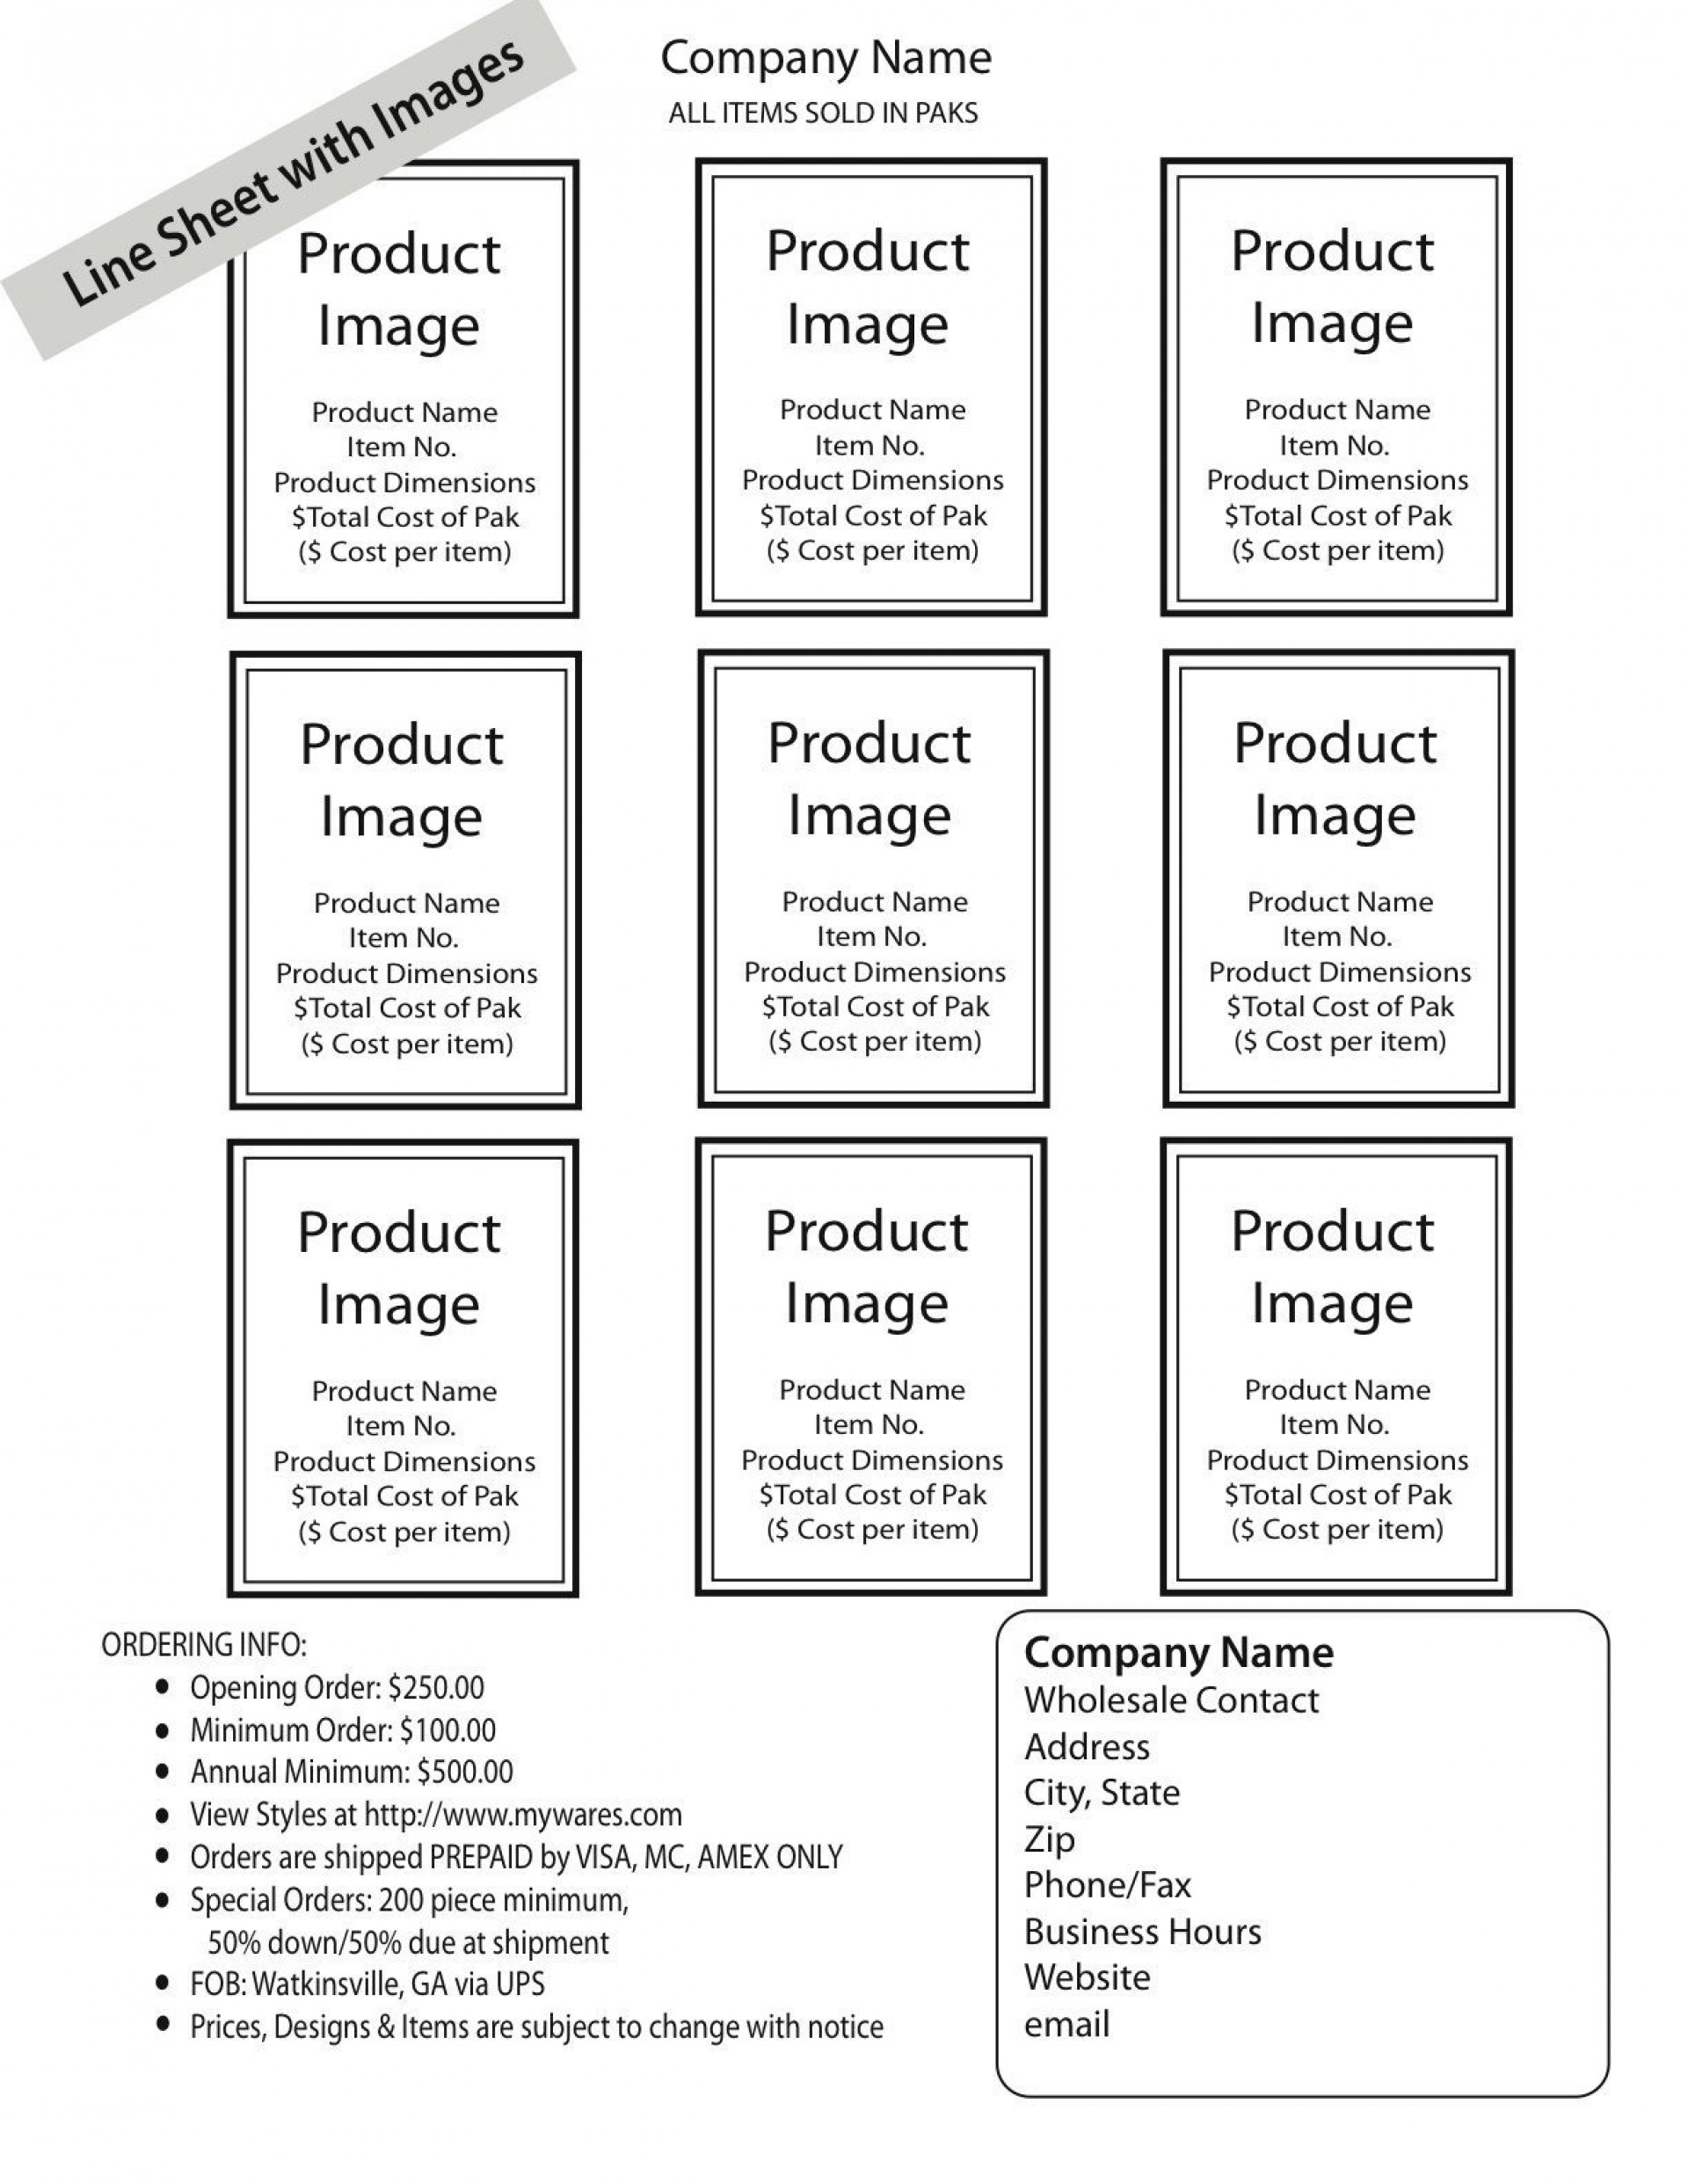 004 Awesome Wholesale Line Sheet Template Idea  Excel1920